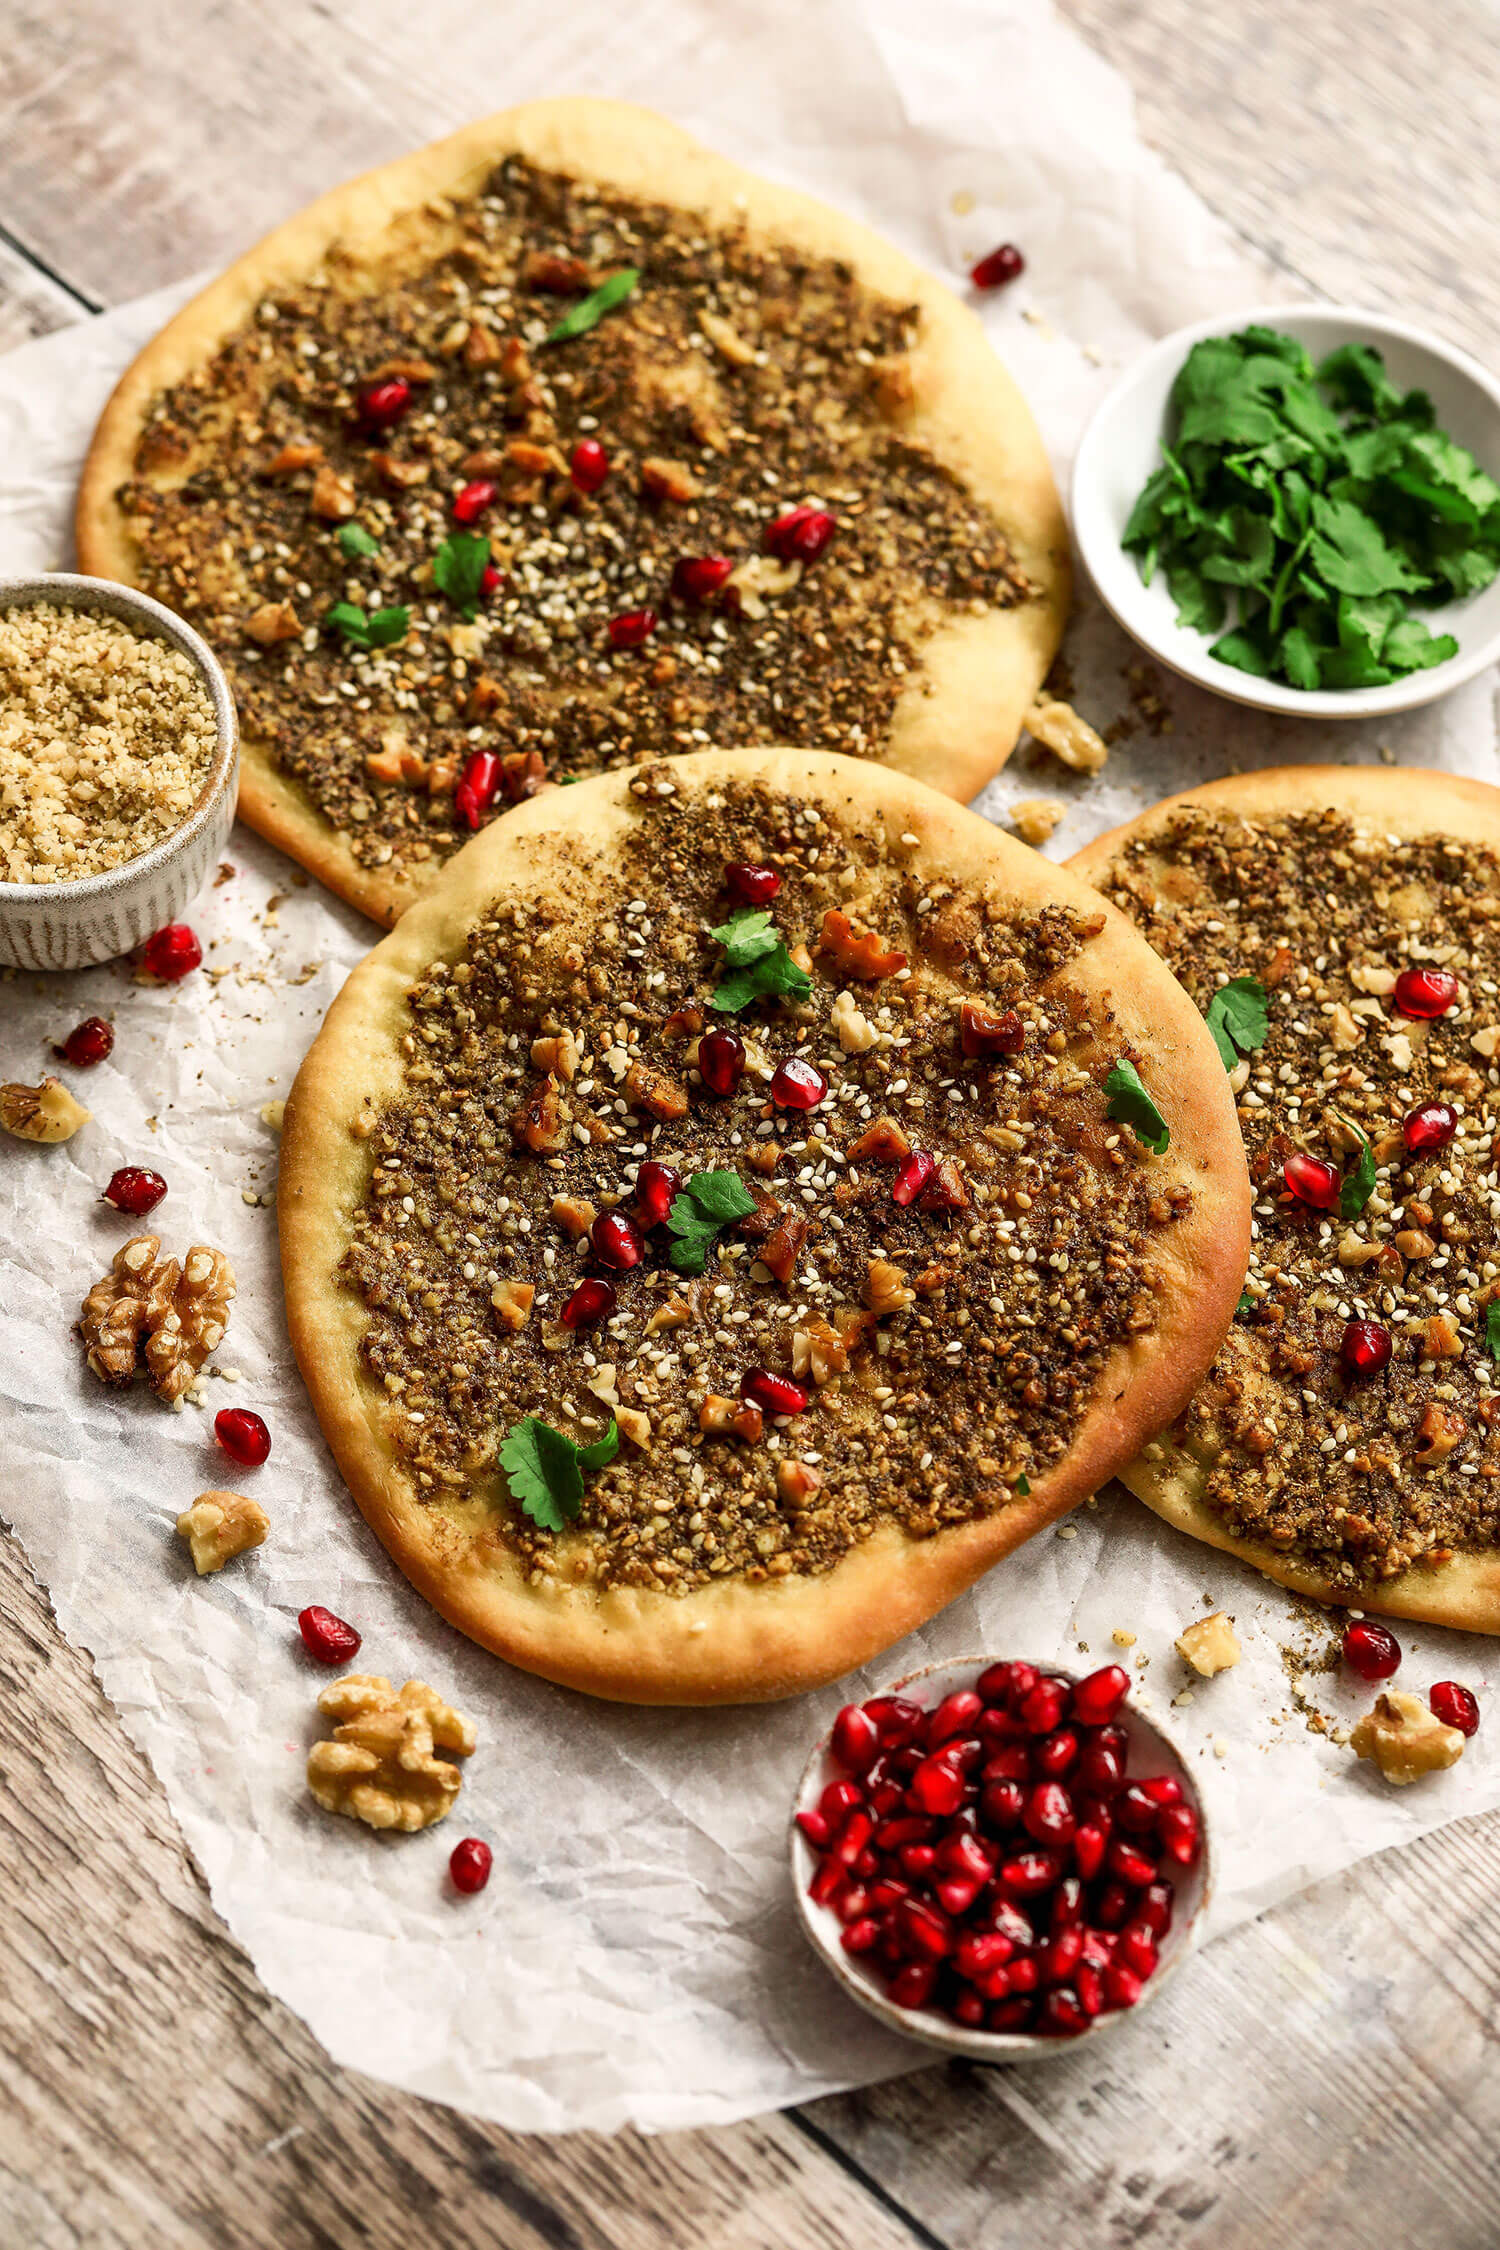 California Walnut Za'atar Flat Breads